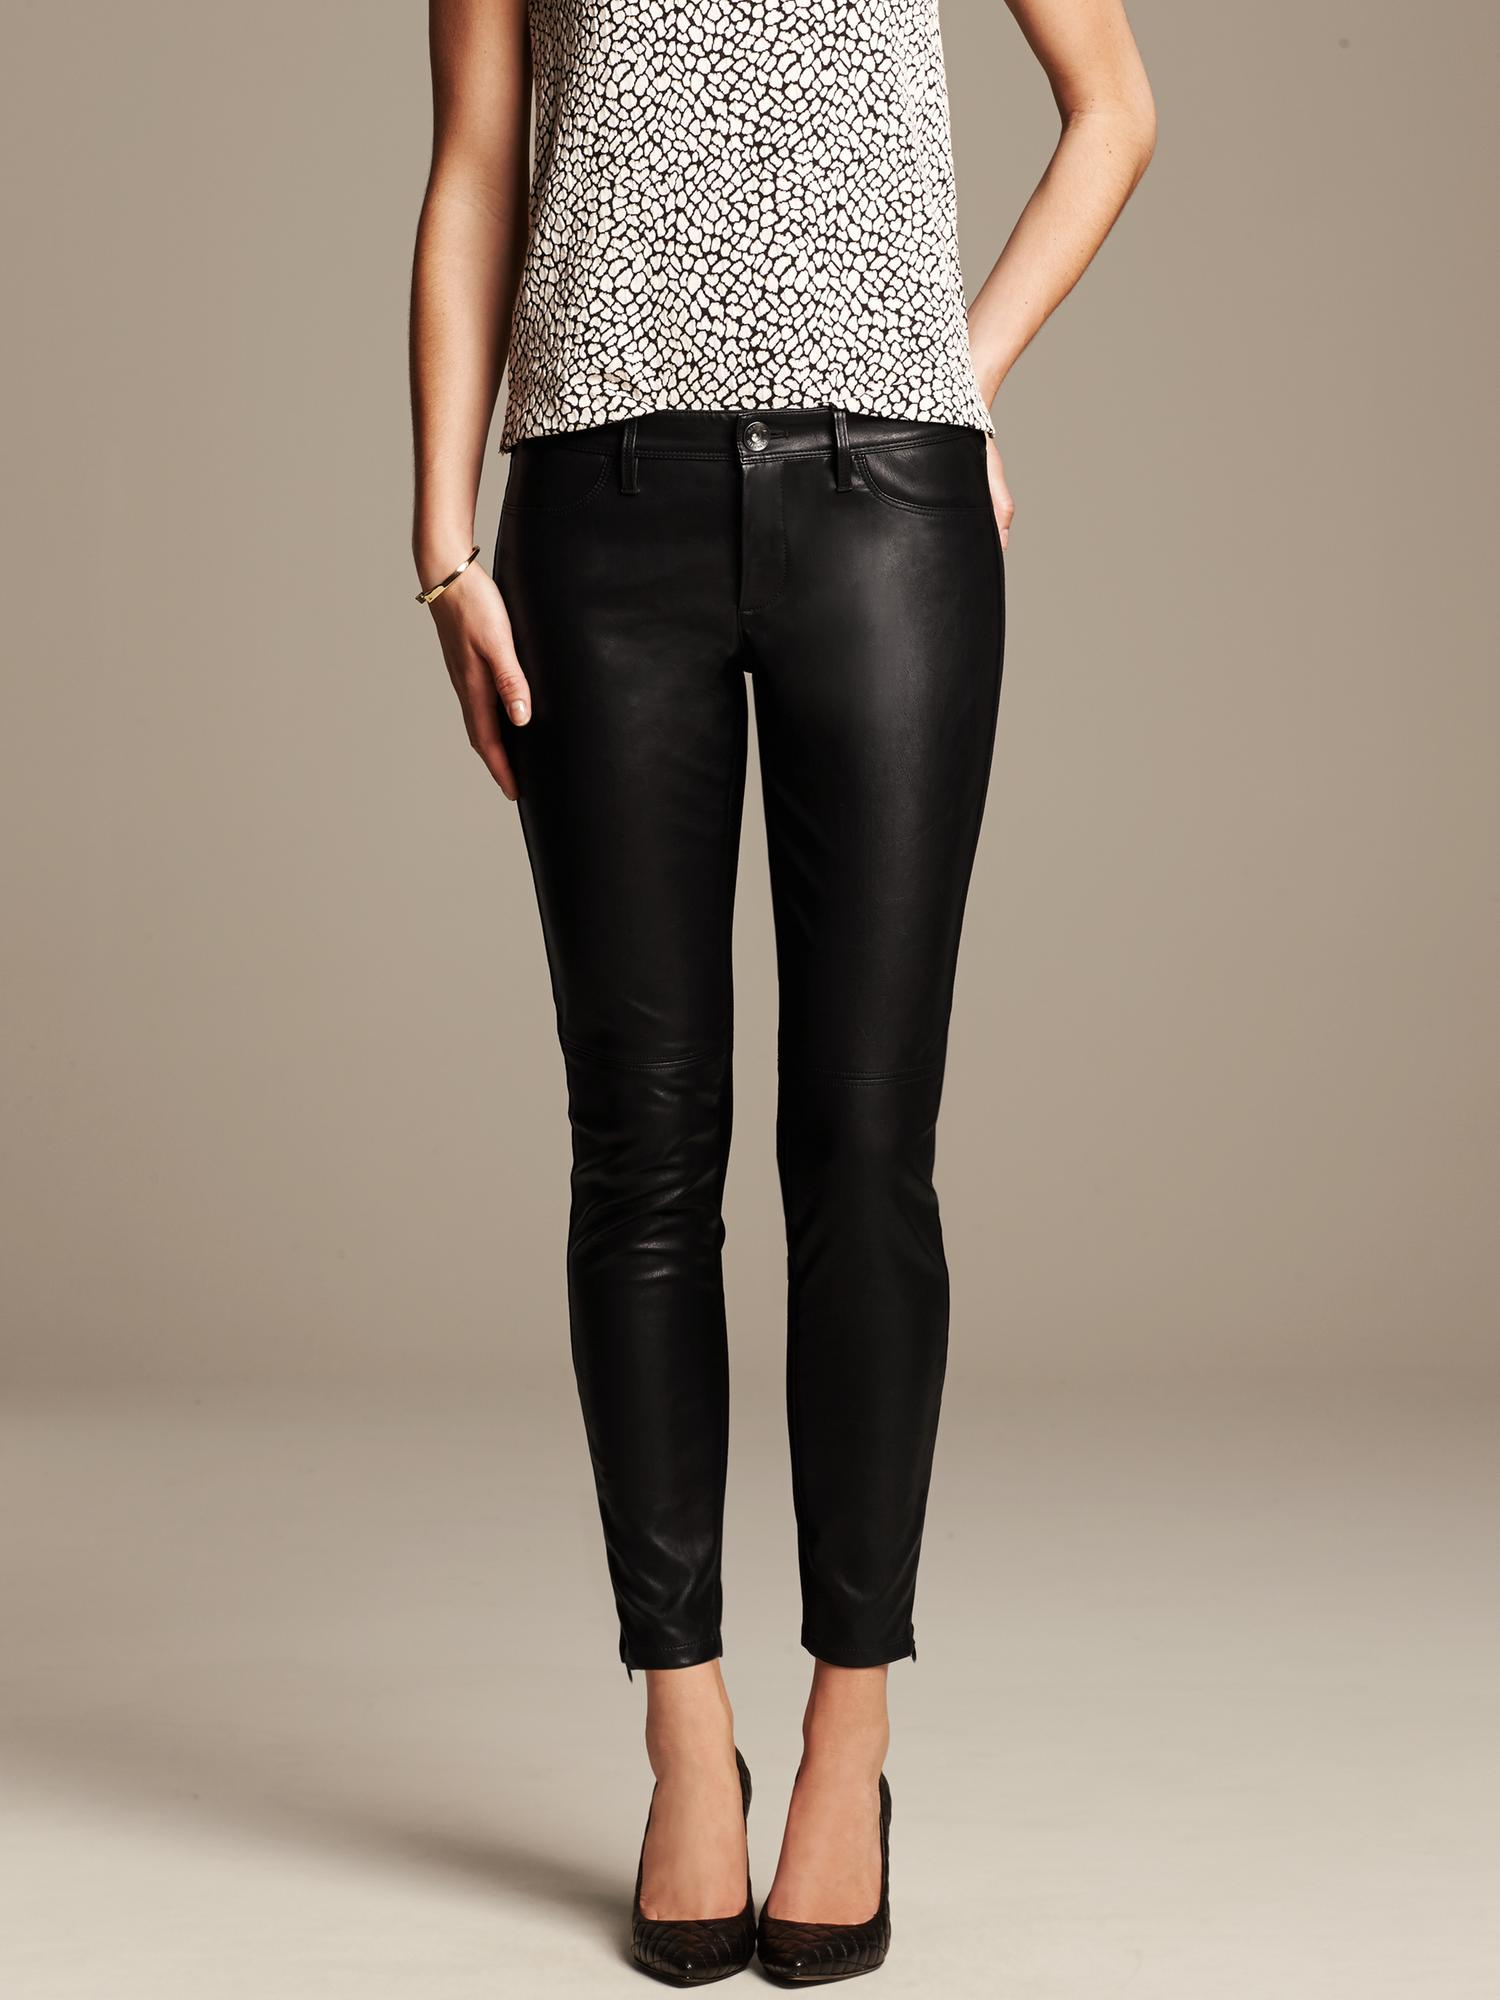 Banana Republic Sloan Fit Faux Leather Ankle Pant Black in Black